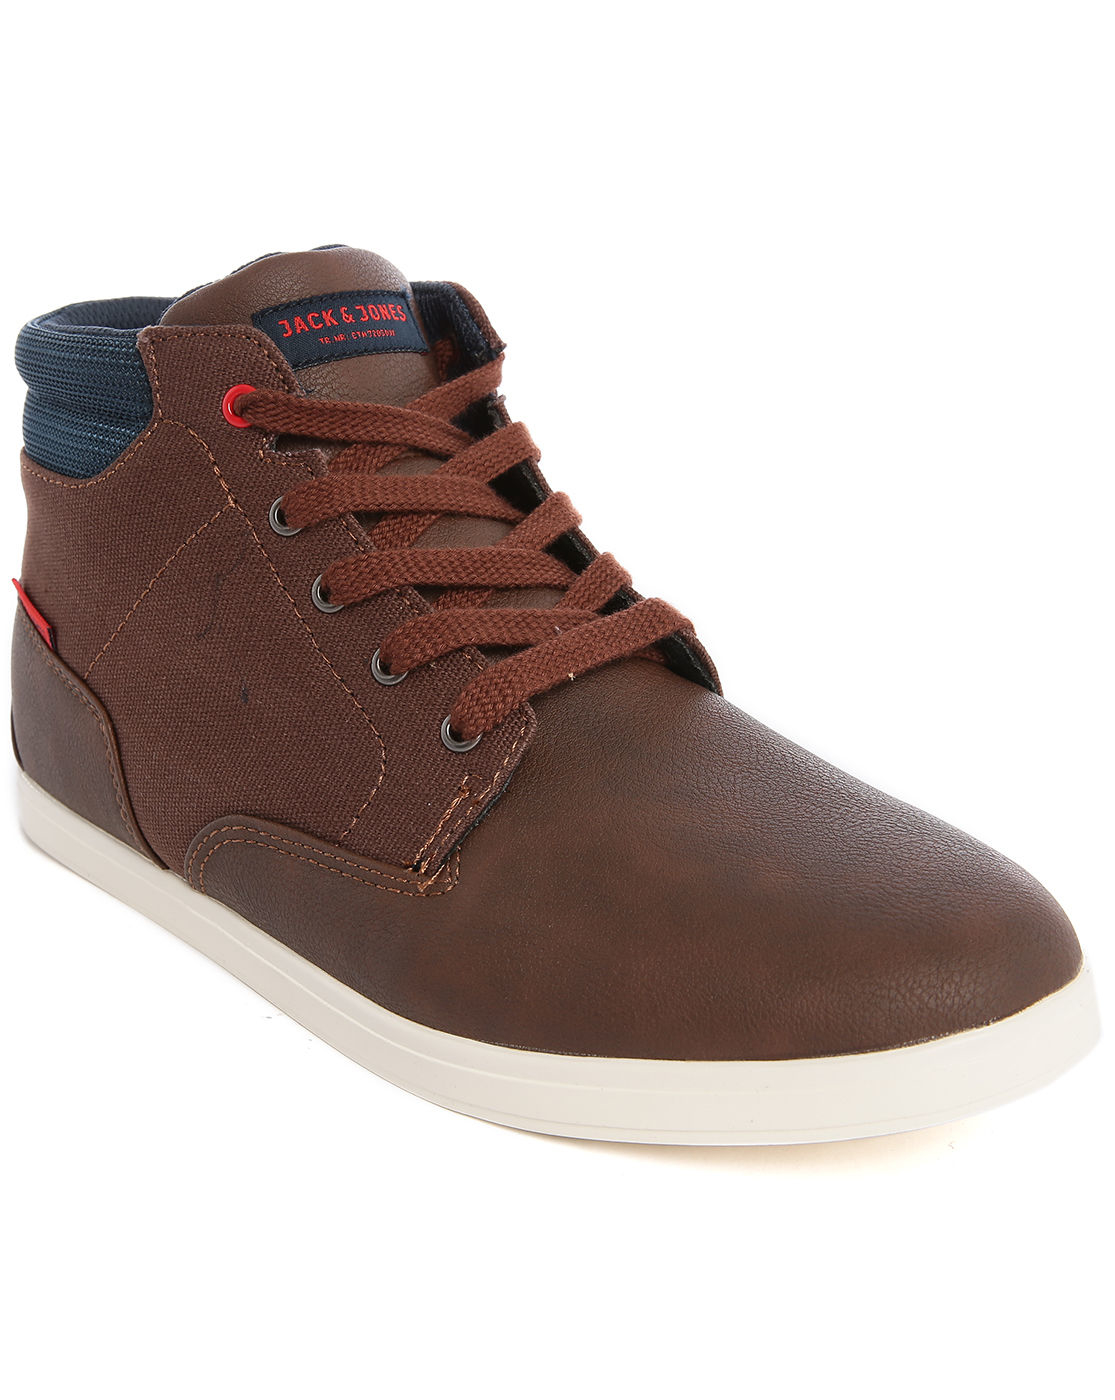 jack jones jjvaspa brown dual fabric high top canvas sneakers for. Black Bedroom Furniture Sets. Home Design Ideas